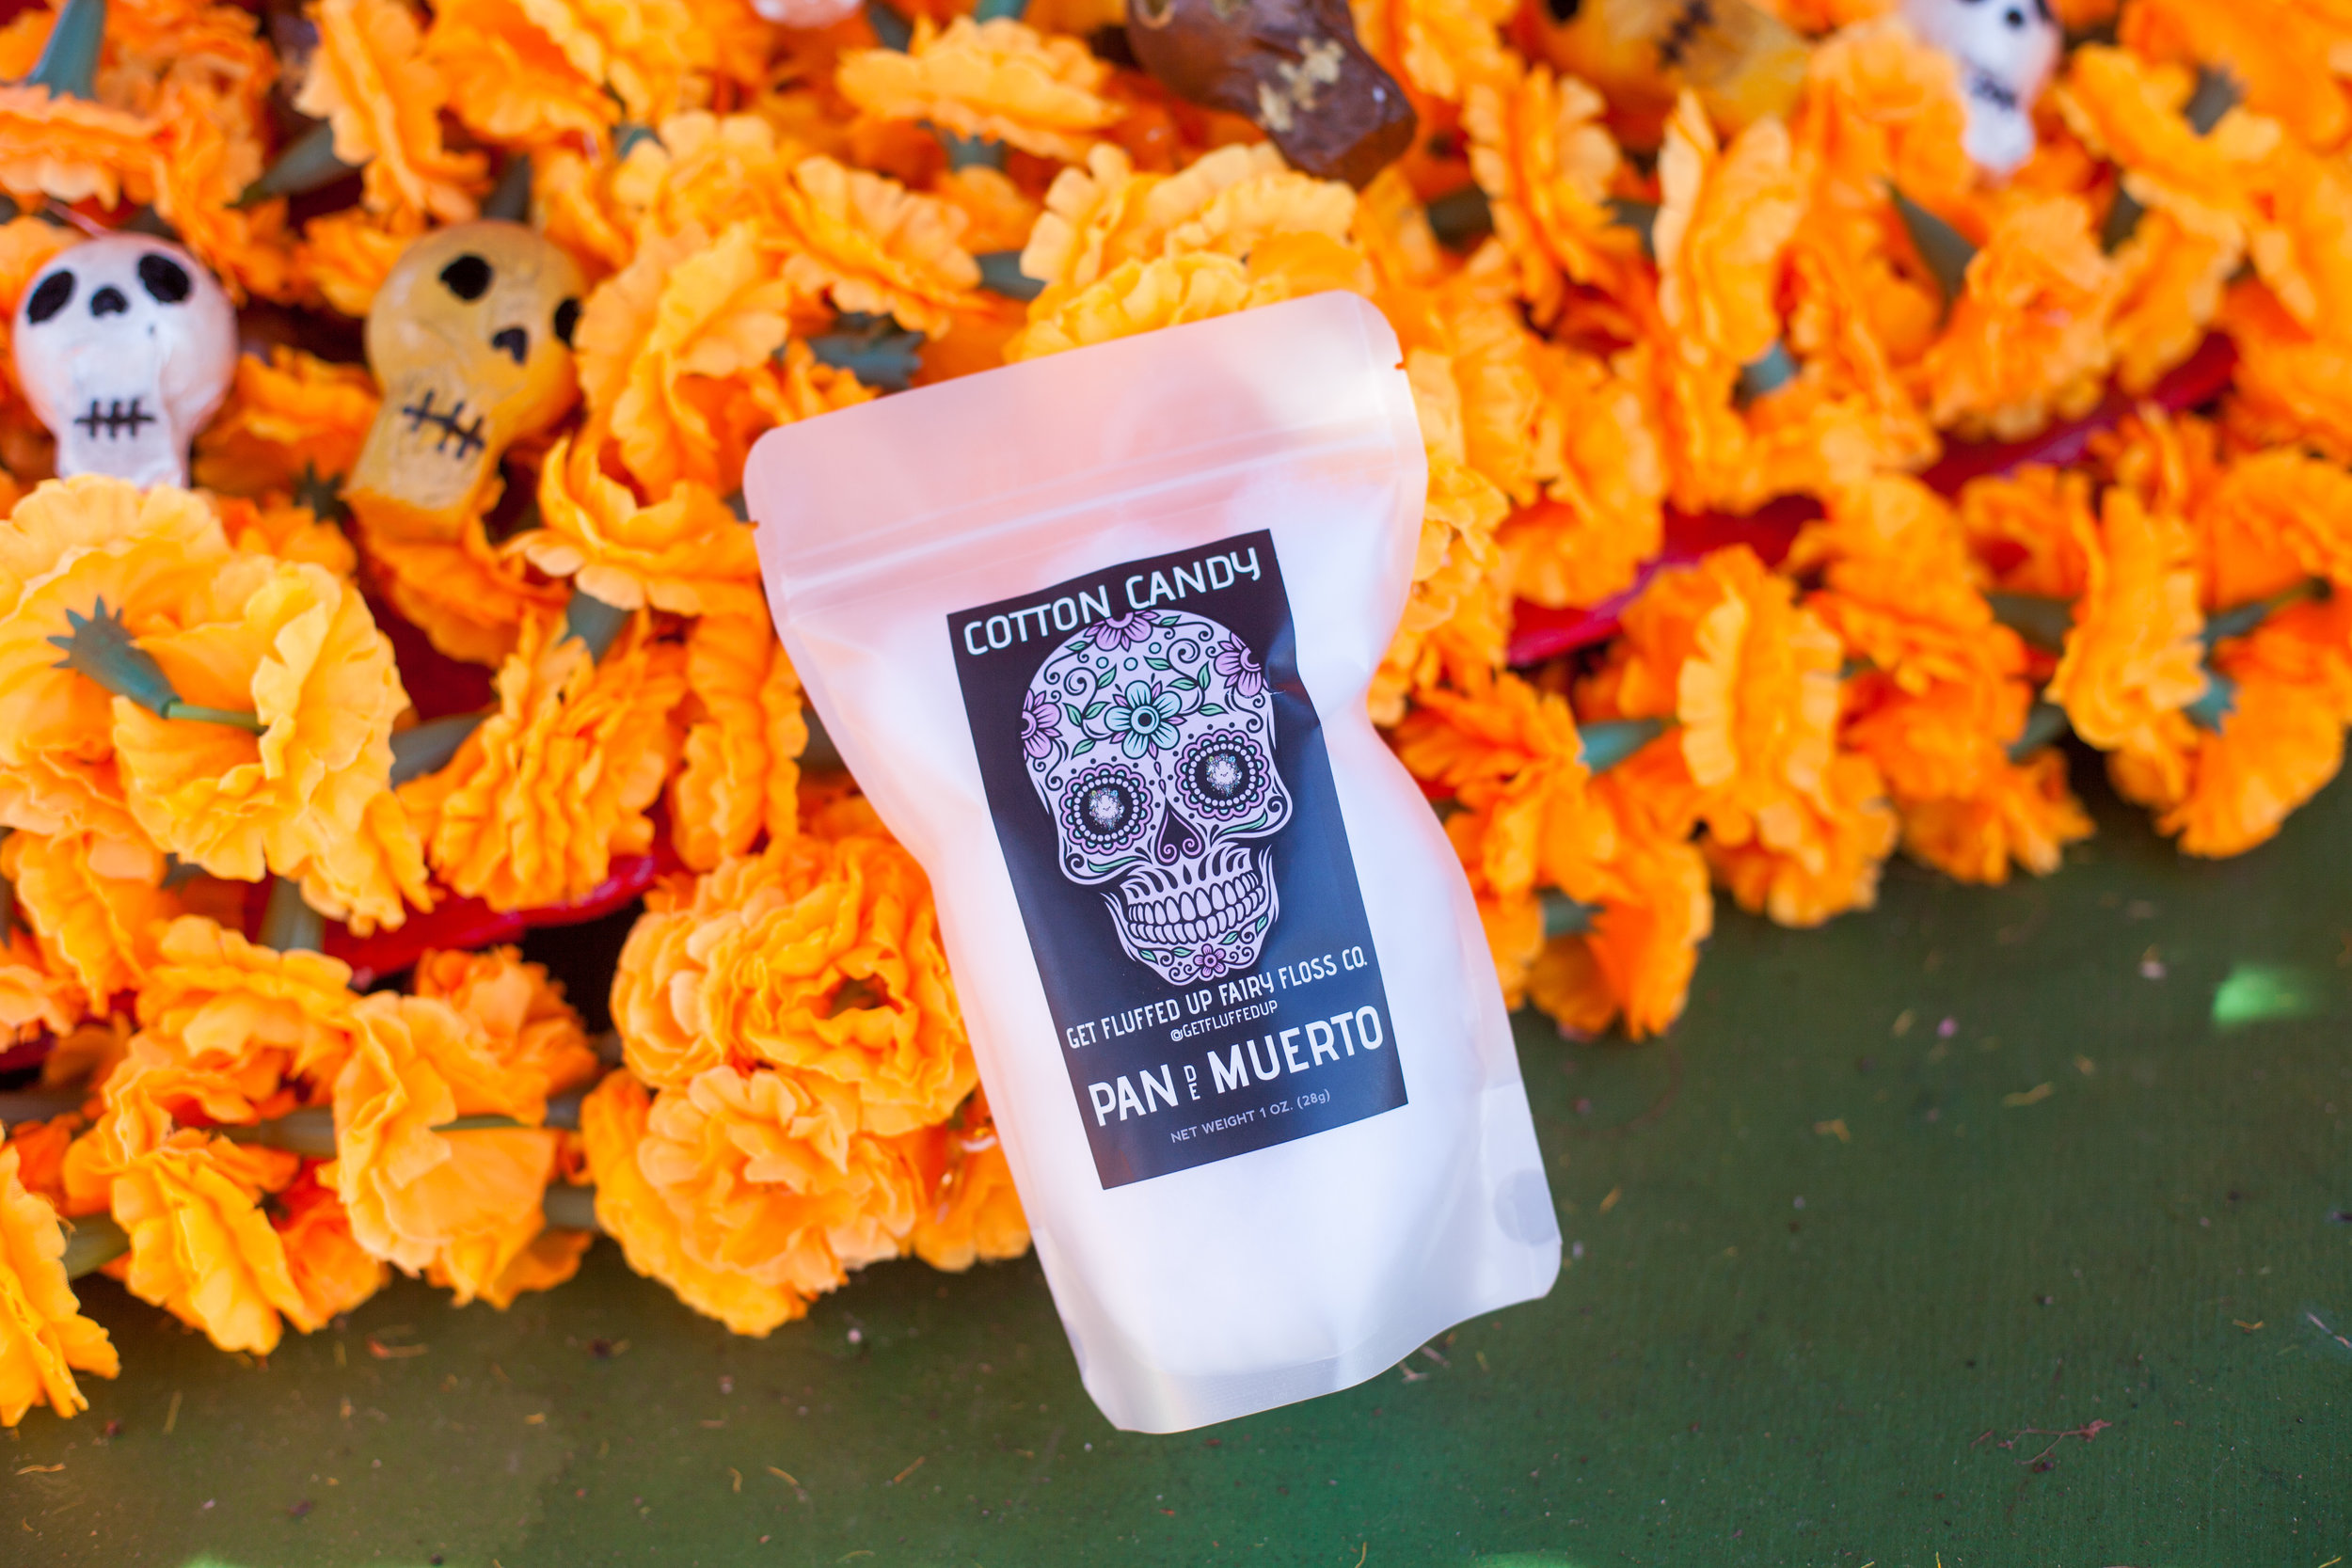 vegan-cotton-candypan-de-muertos-fairy-floss-get-fluffed